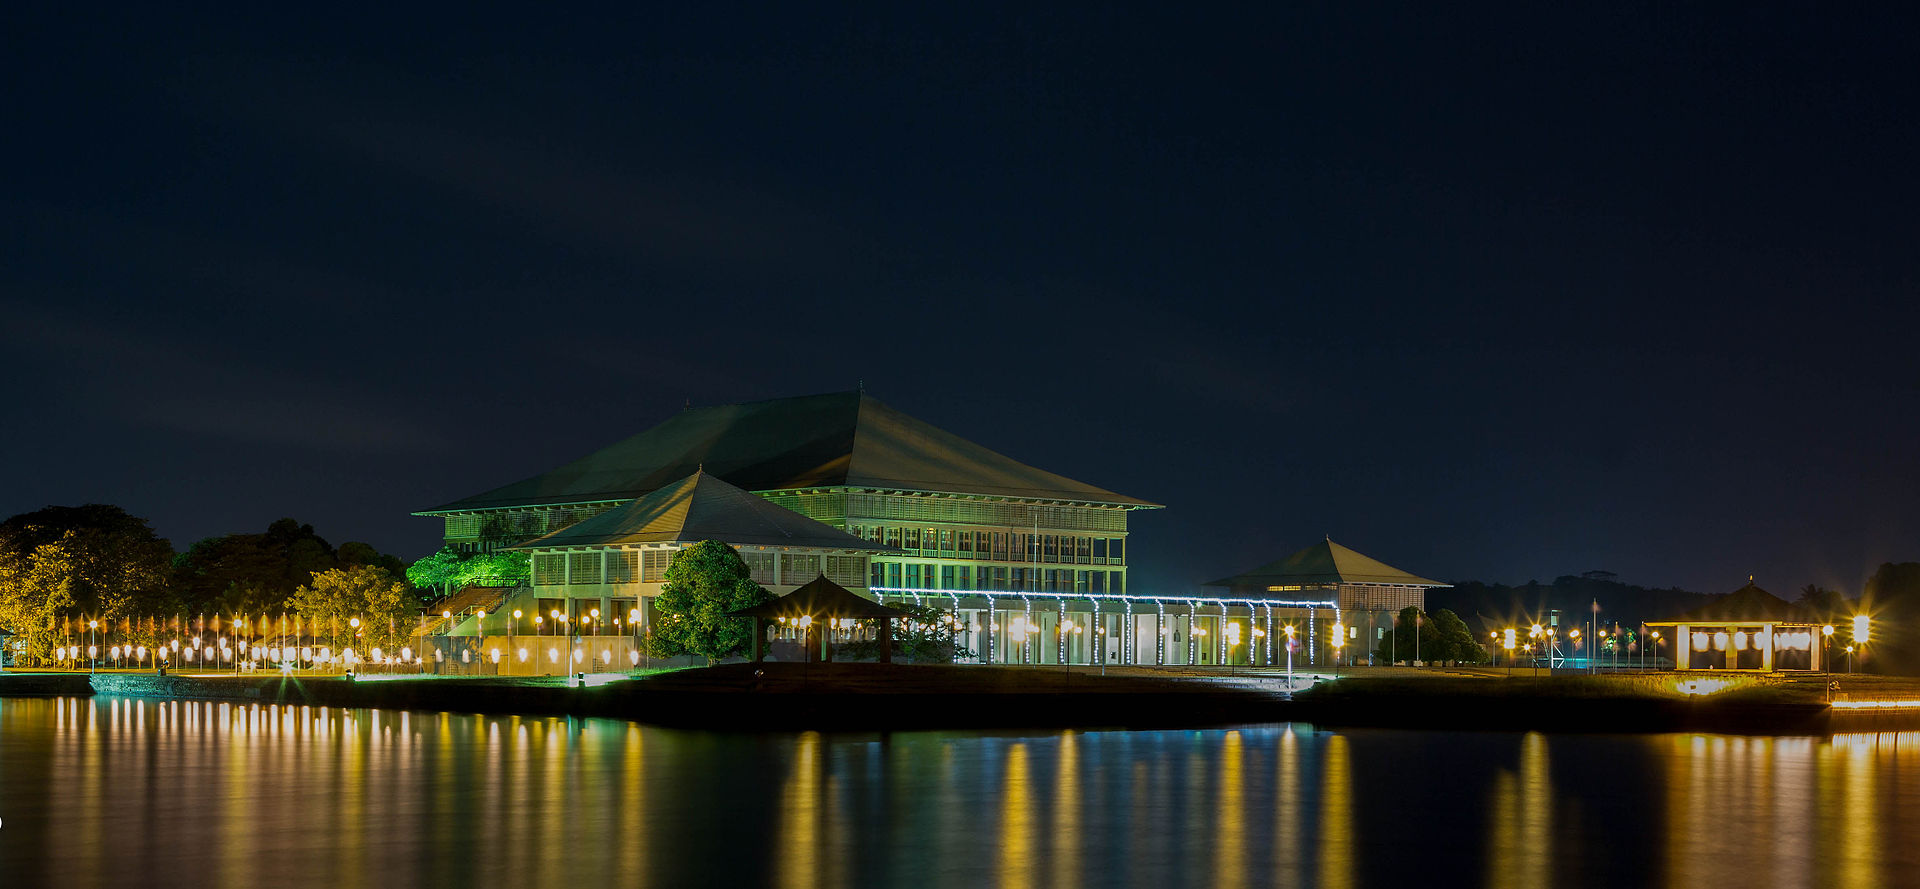 10 Projects by Geoffrey Bawa that made him the pioneer of Tropical Modernism - Sri Lankan Parliament Complex, Sri Lanka